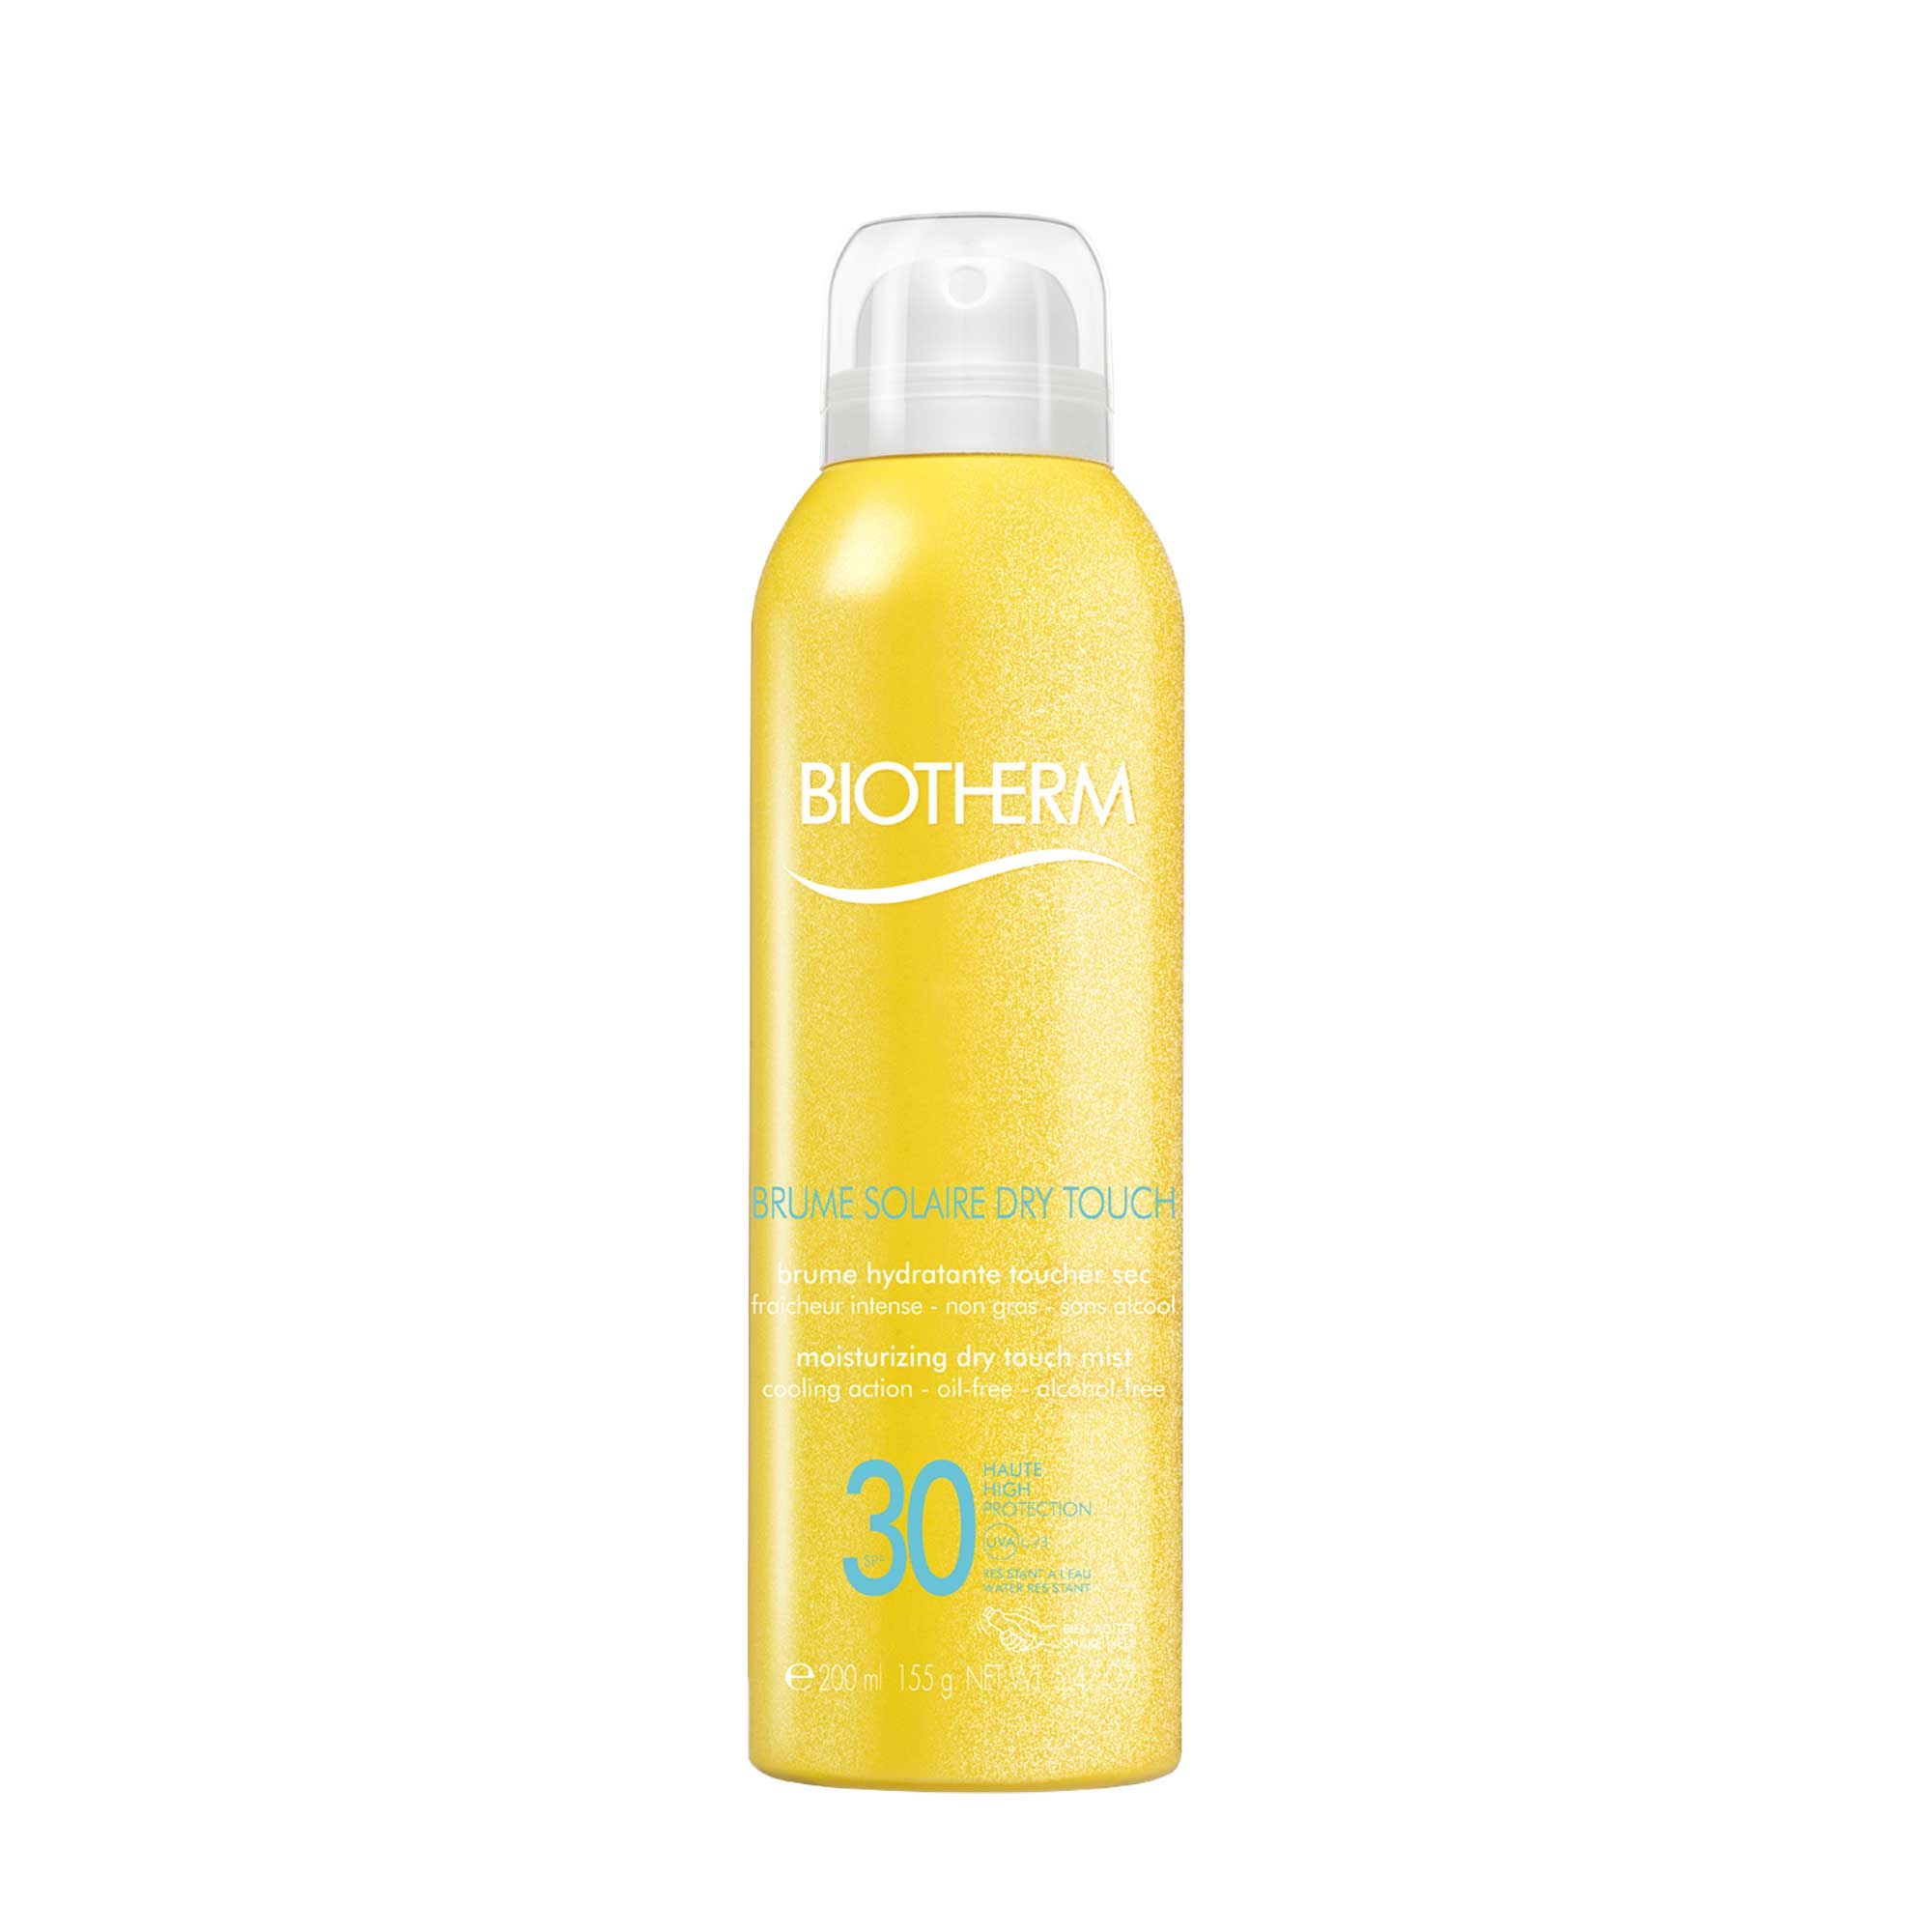 Crema Solare Dry Touch Spf30 - Biotherm